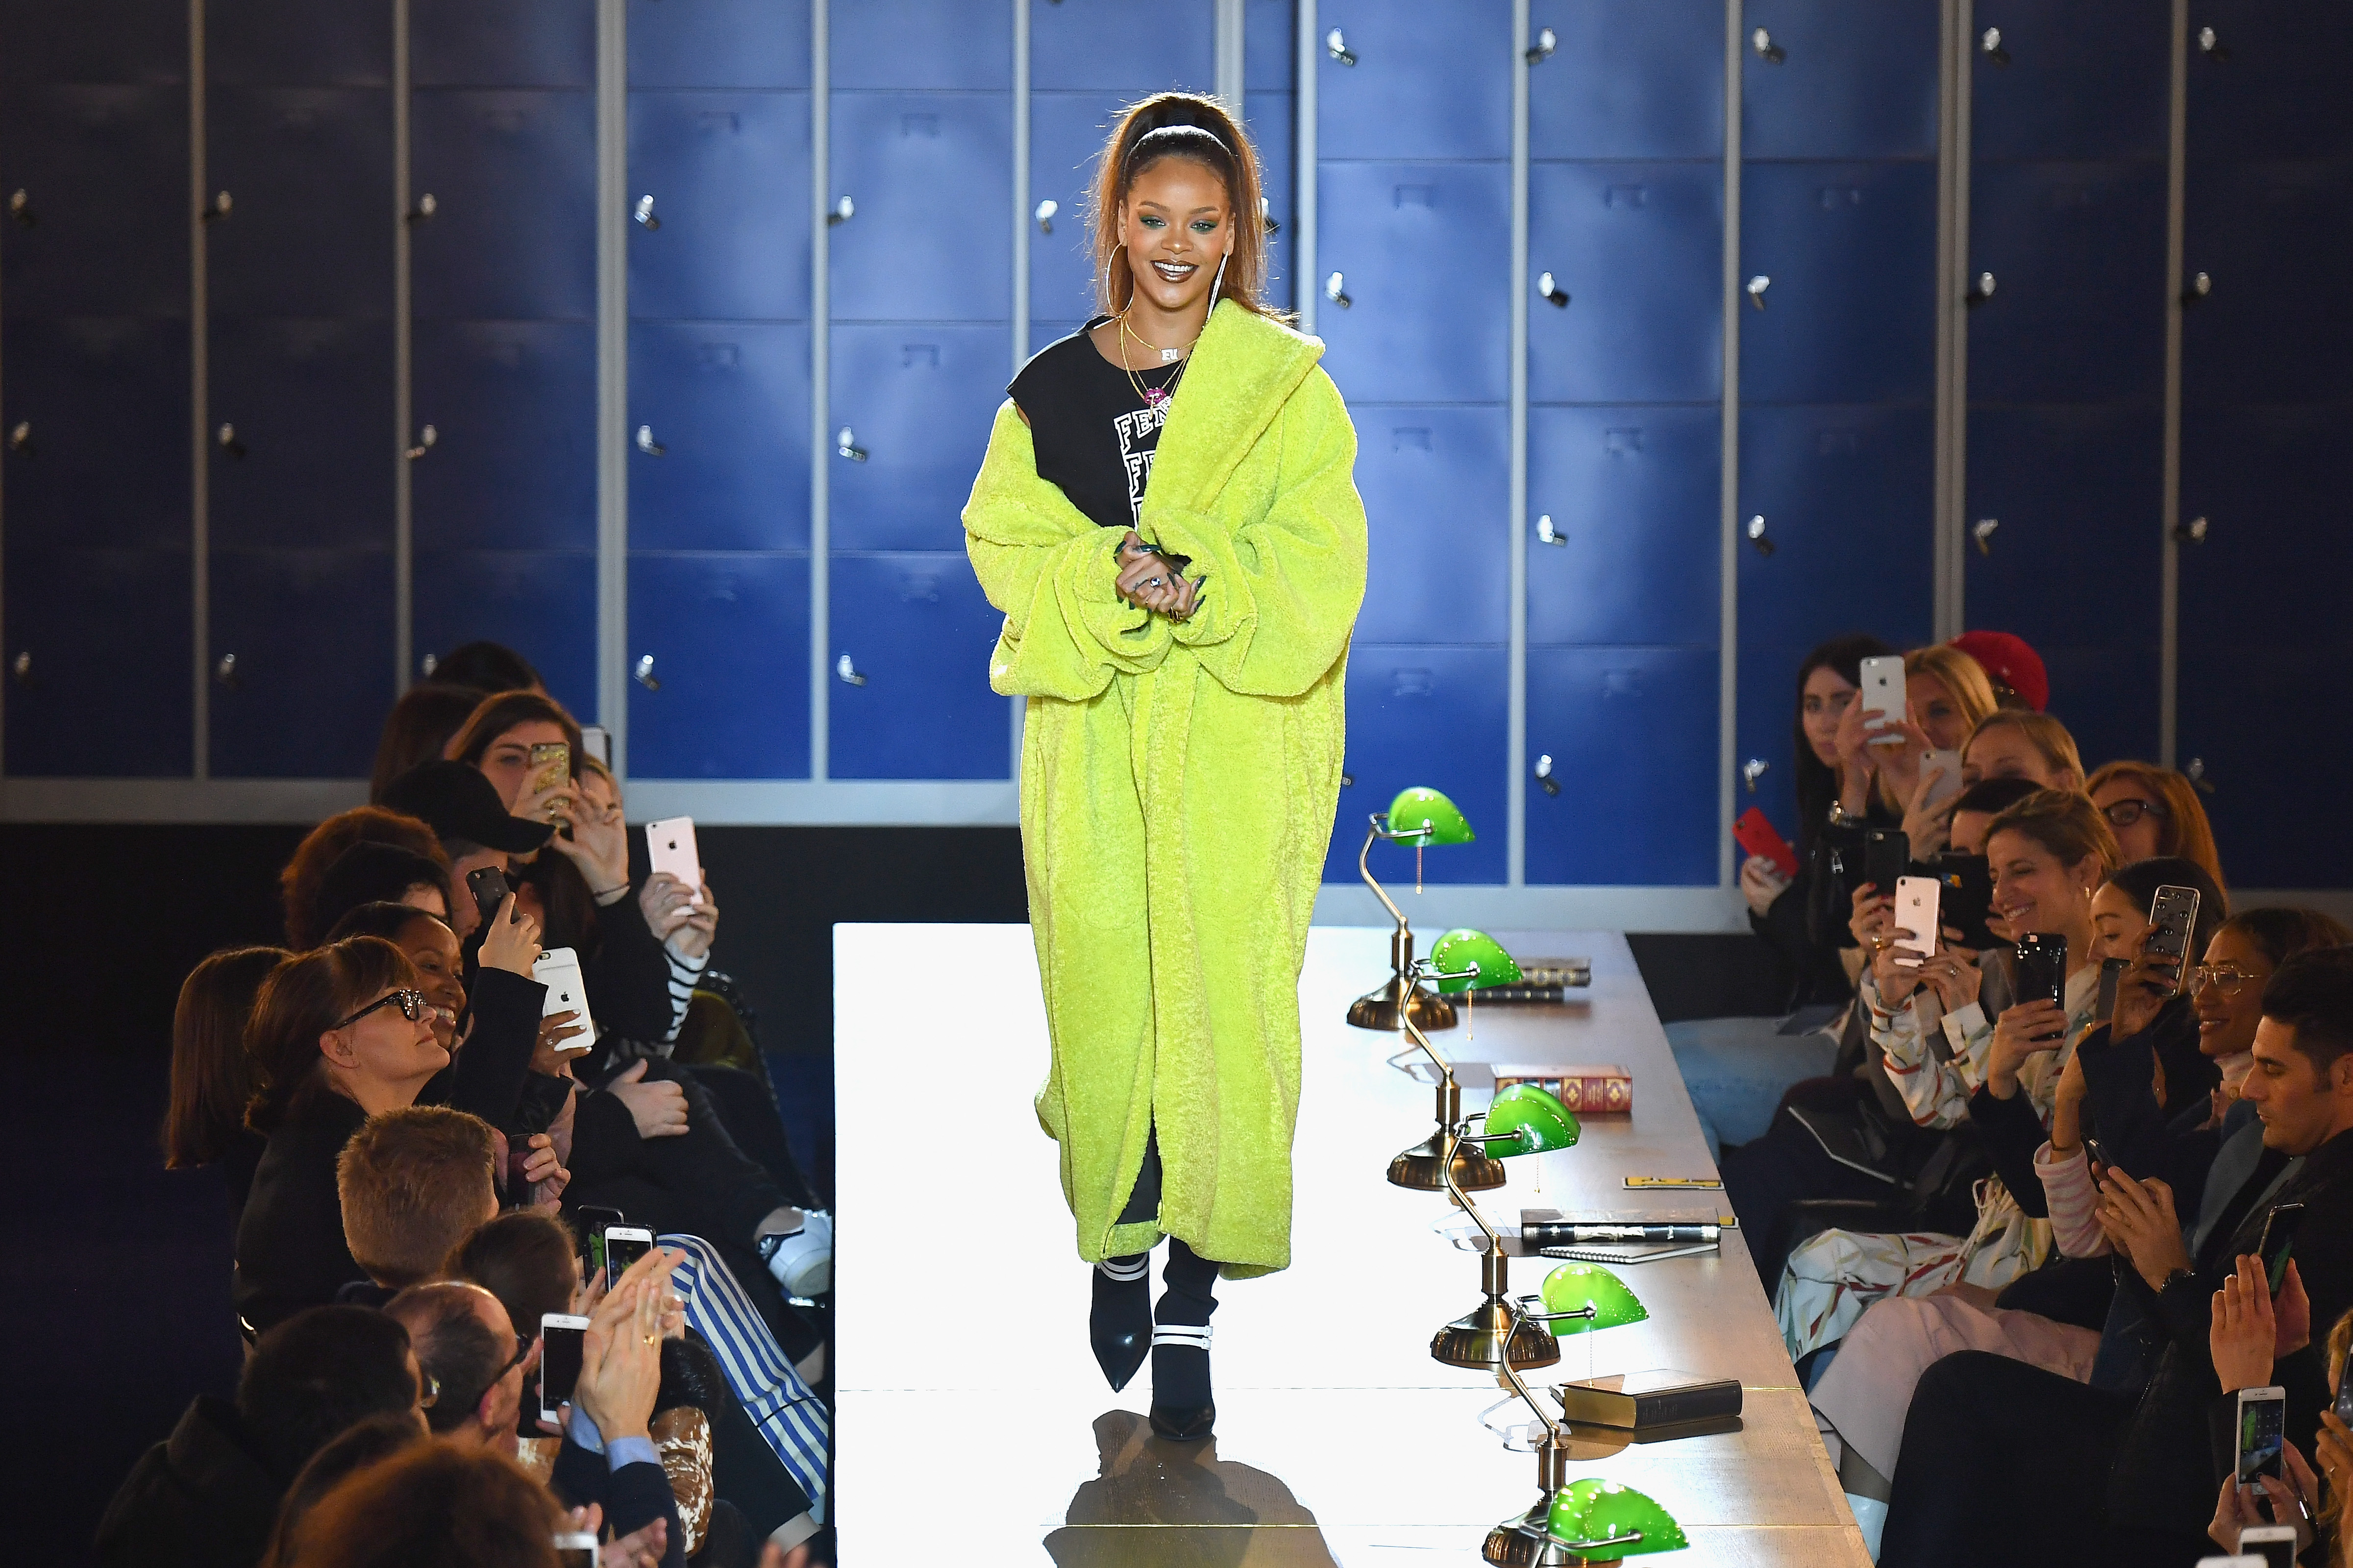 FENTY PUMA by Rihanna Fall / Winter 2017 Collection - RunwayronekvaughnFENTY PUMA by Rihanna Fall / Winter 2017 Collection - Runway